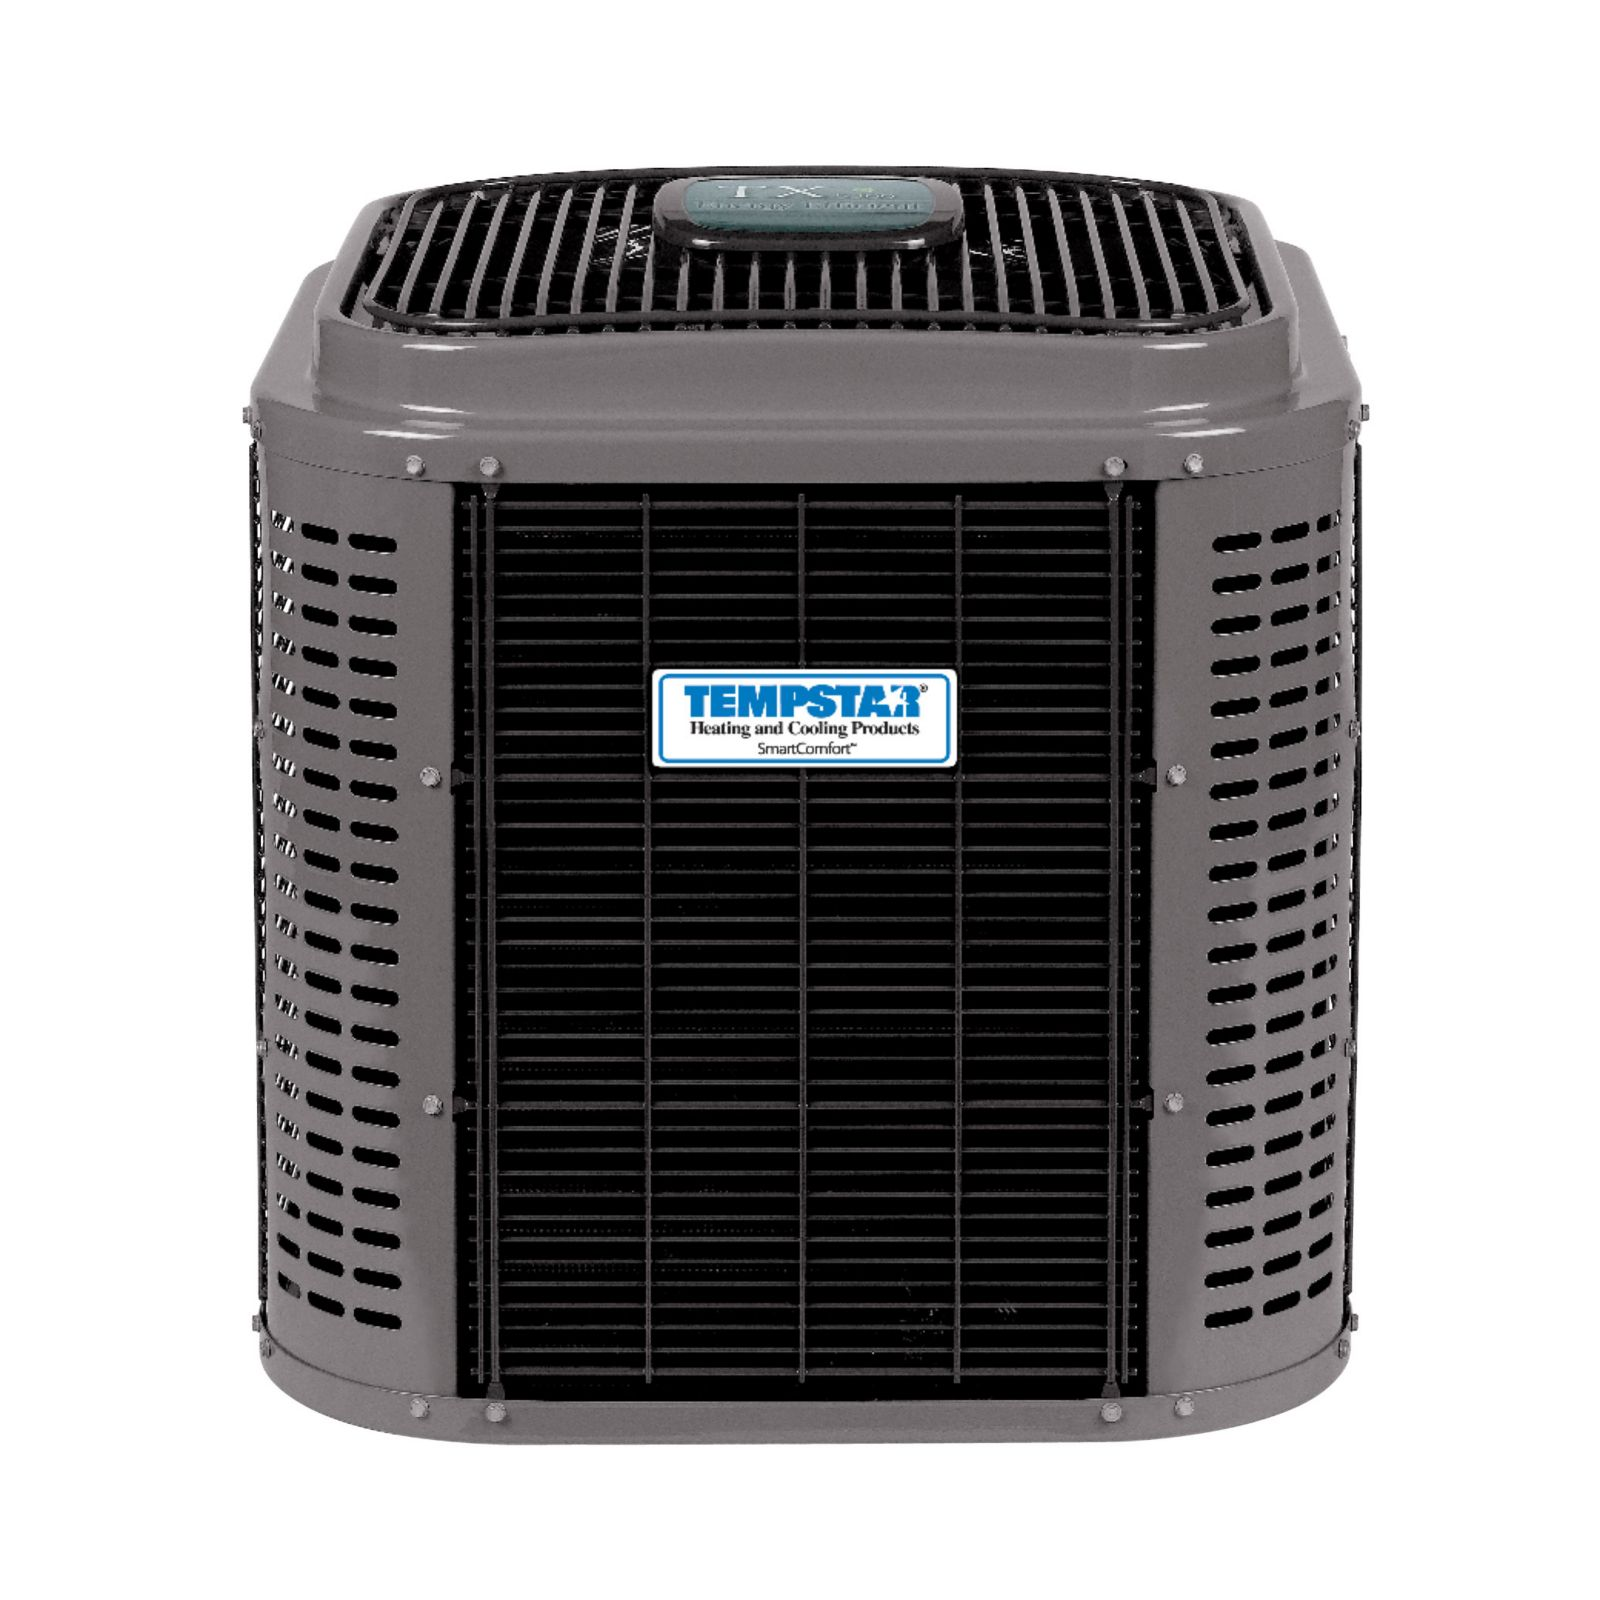 Tempstar TXA648GKA - Mainline Series - 4 Ton, 16 SEER, R410A, Air Conditioner, Coil Guard Grille, 208/230-1-60